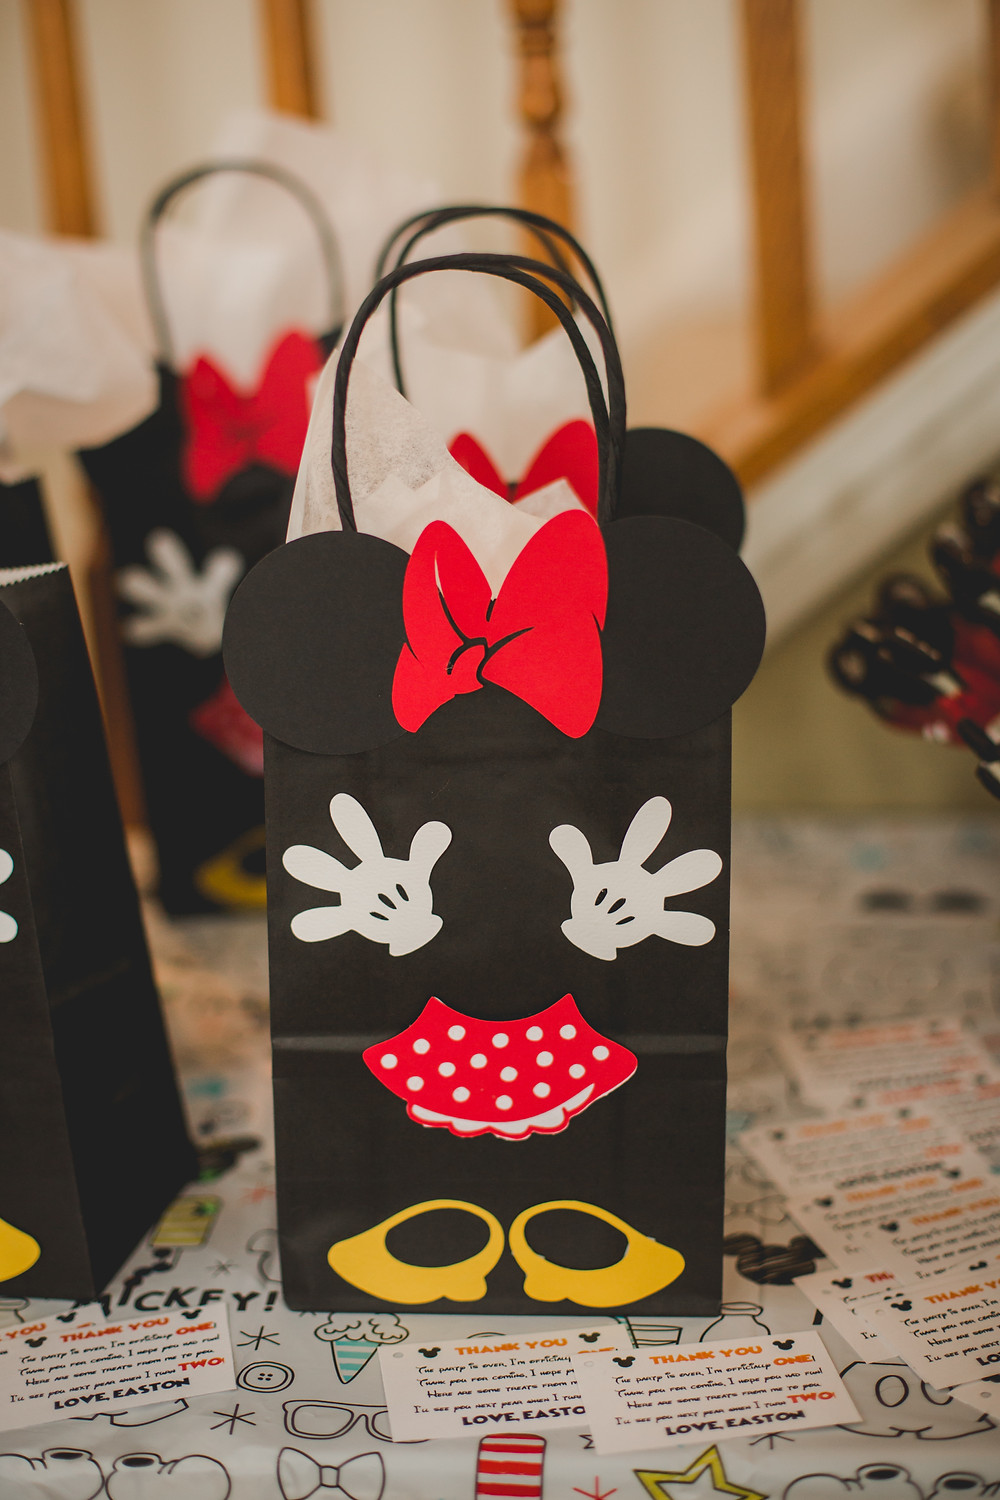 Micky Mouse themed goody bags